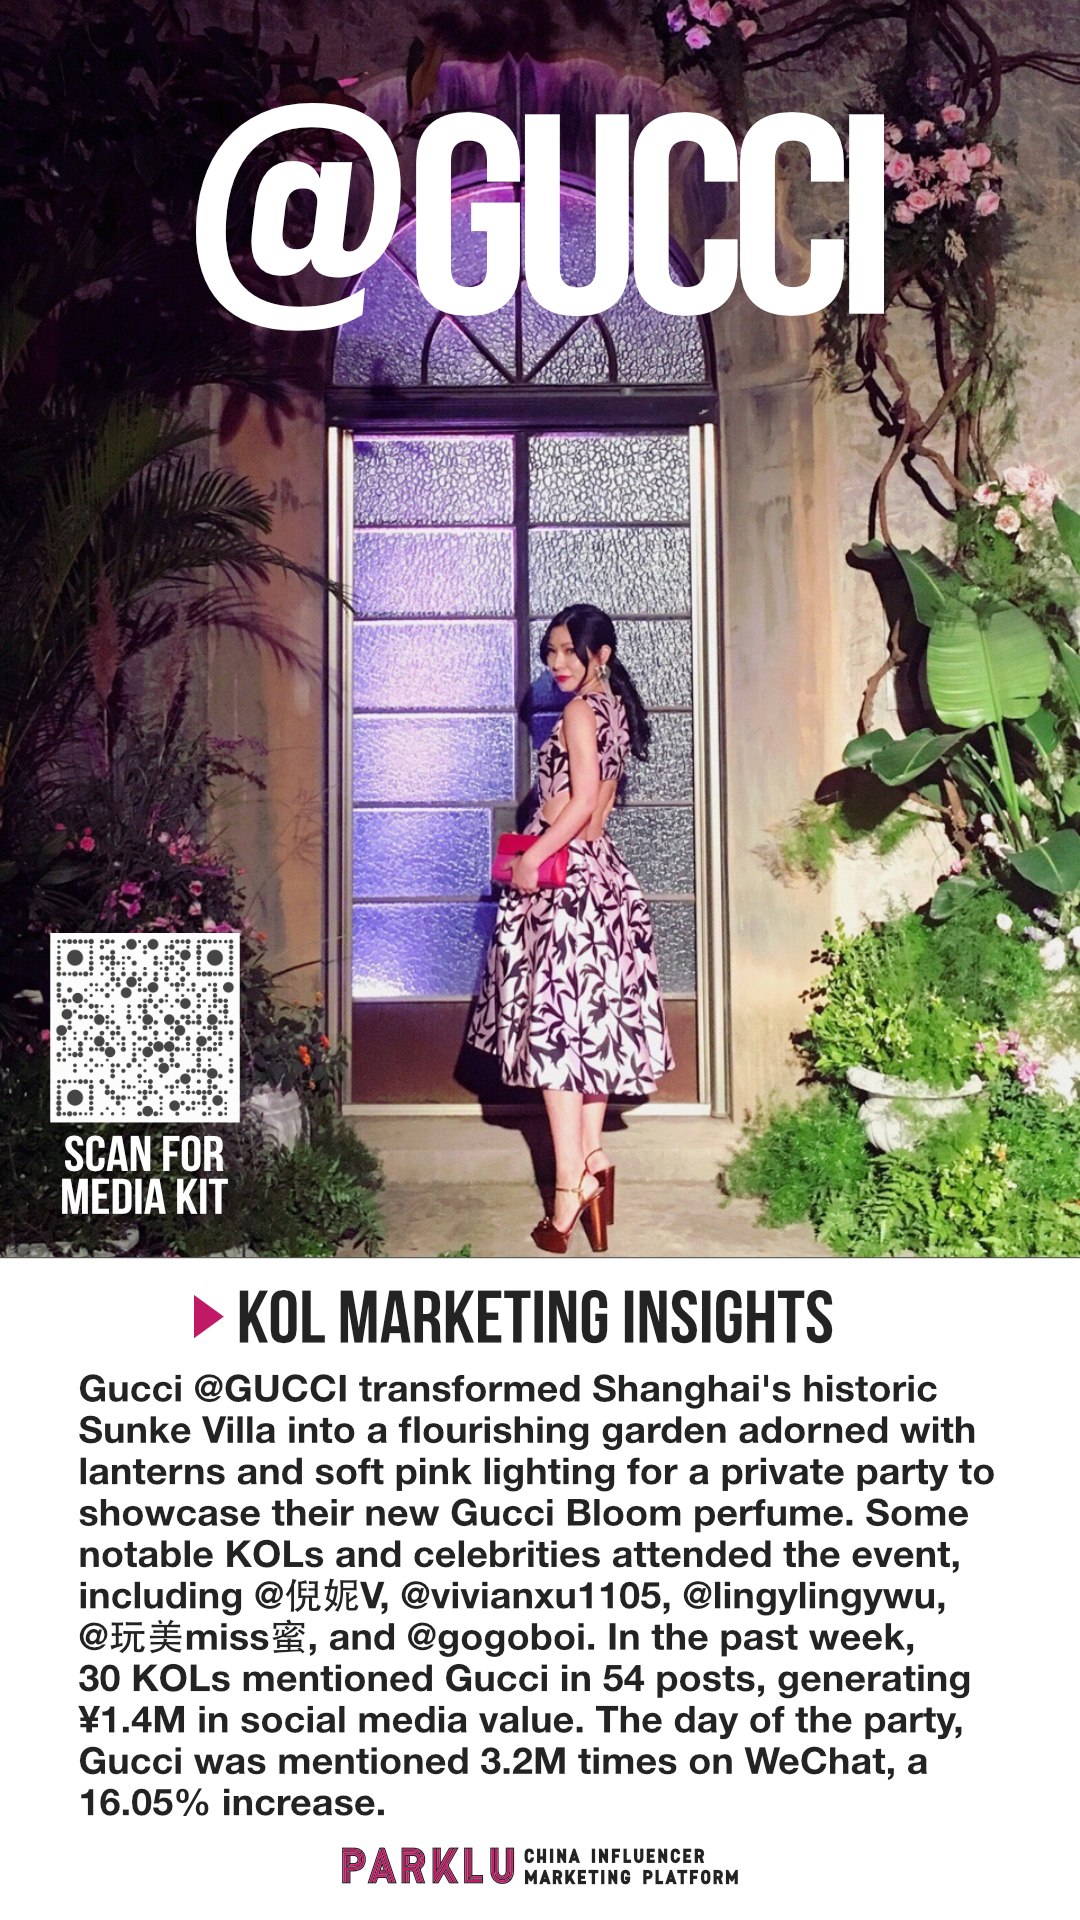 Gucci Bloom Showcase Party with KOLs in Shanghai